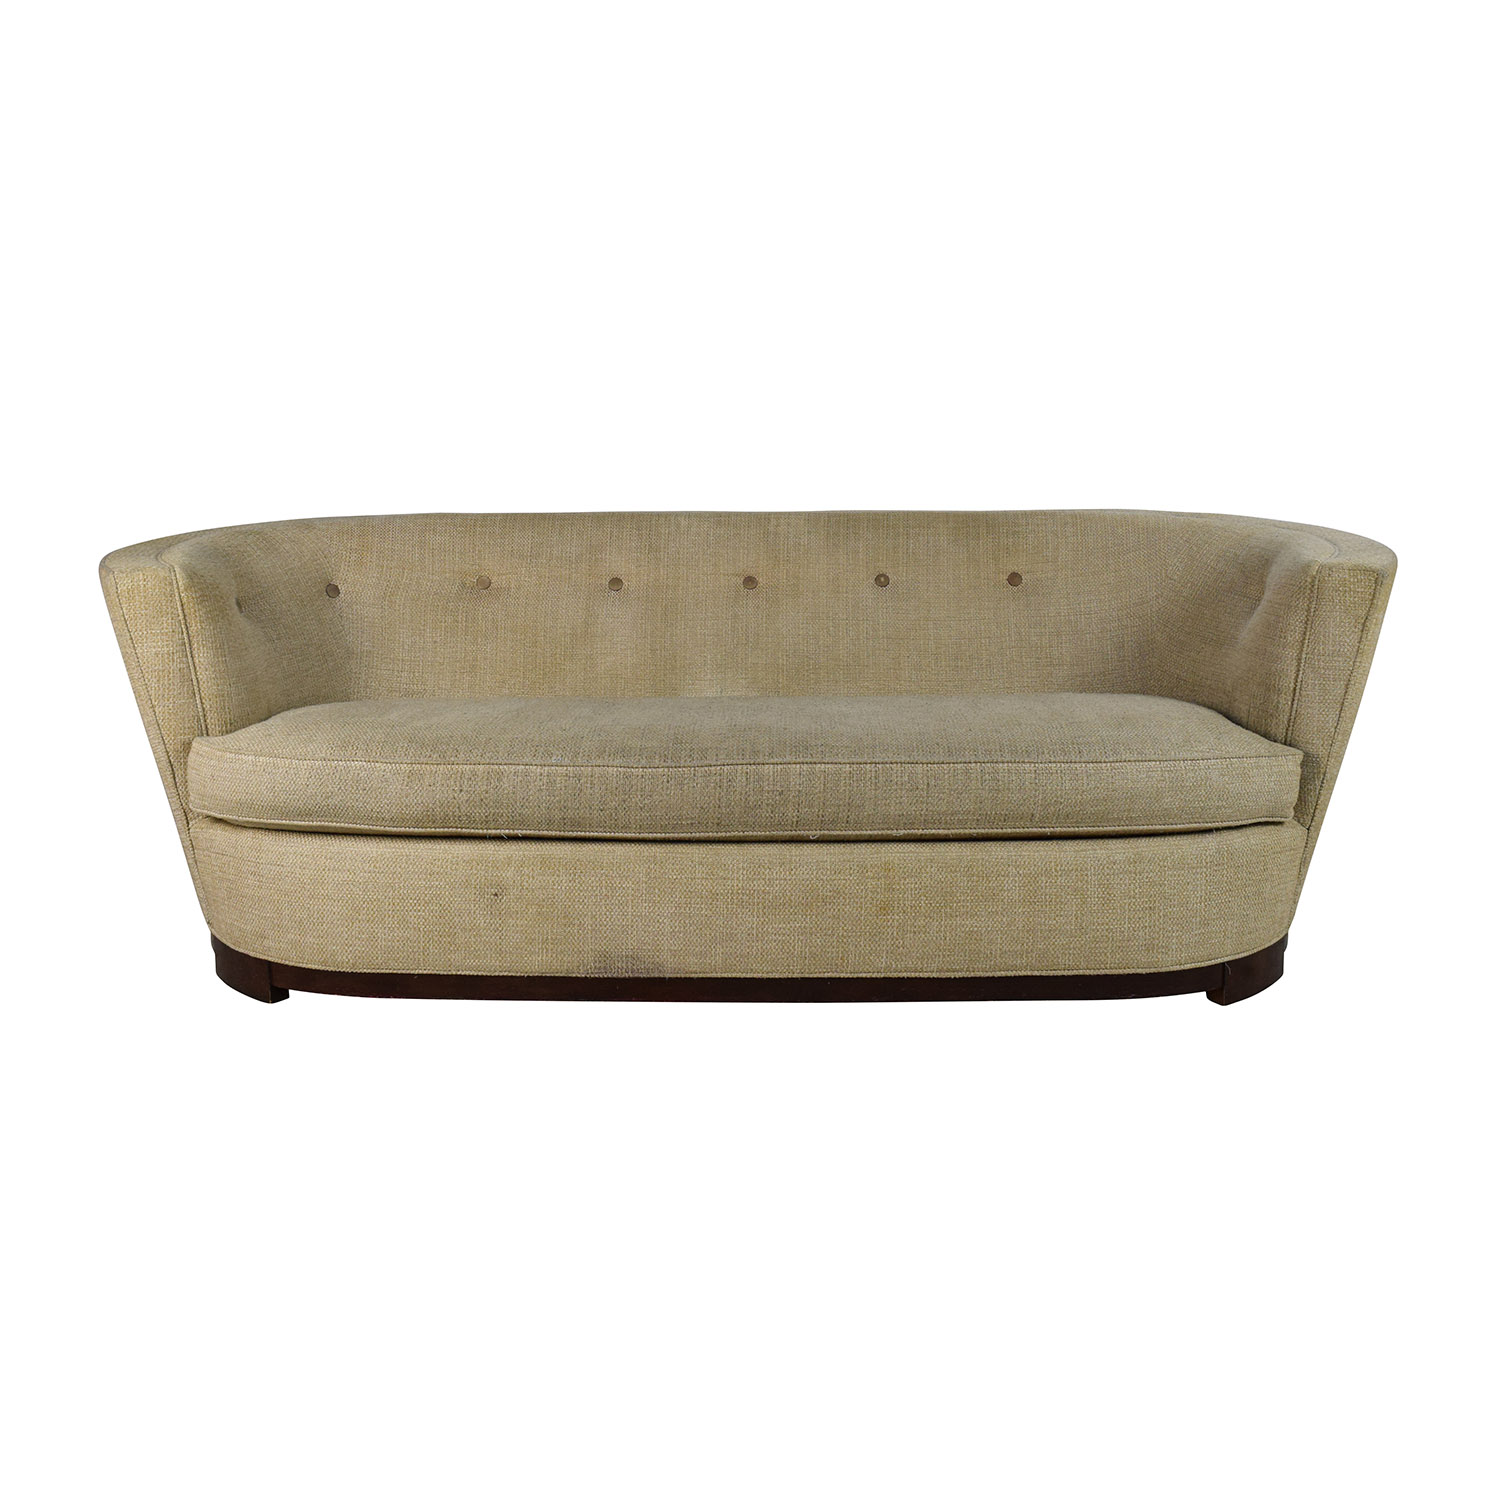 Raymour and Flanigan Raymour & Flanigan Visanti 90 Tan Curved Sofa dimensions